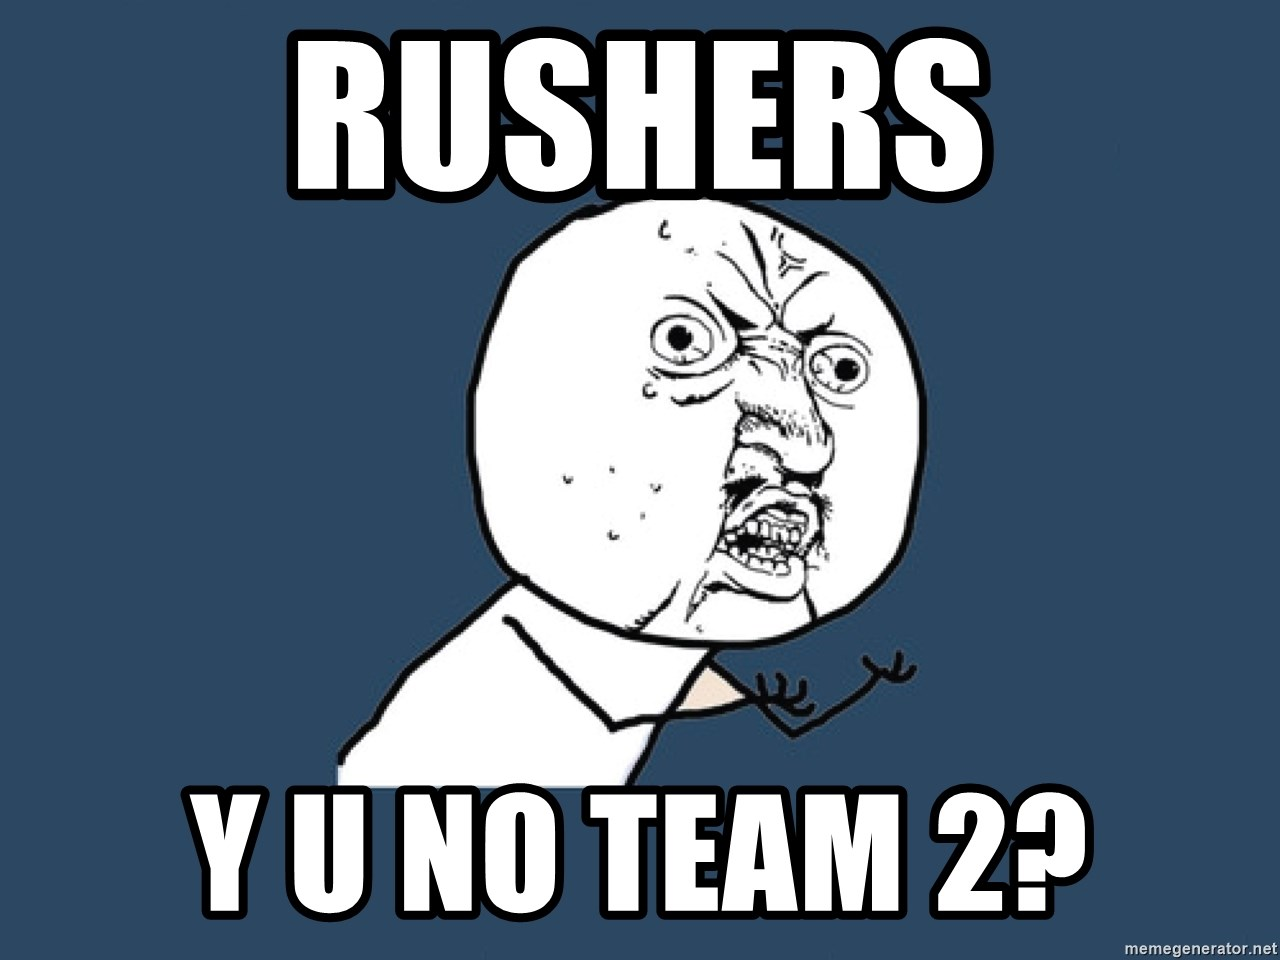 Y U No - rushers y u no team 2?